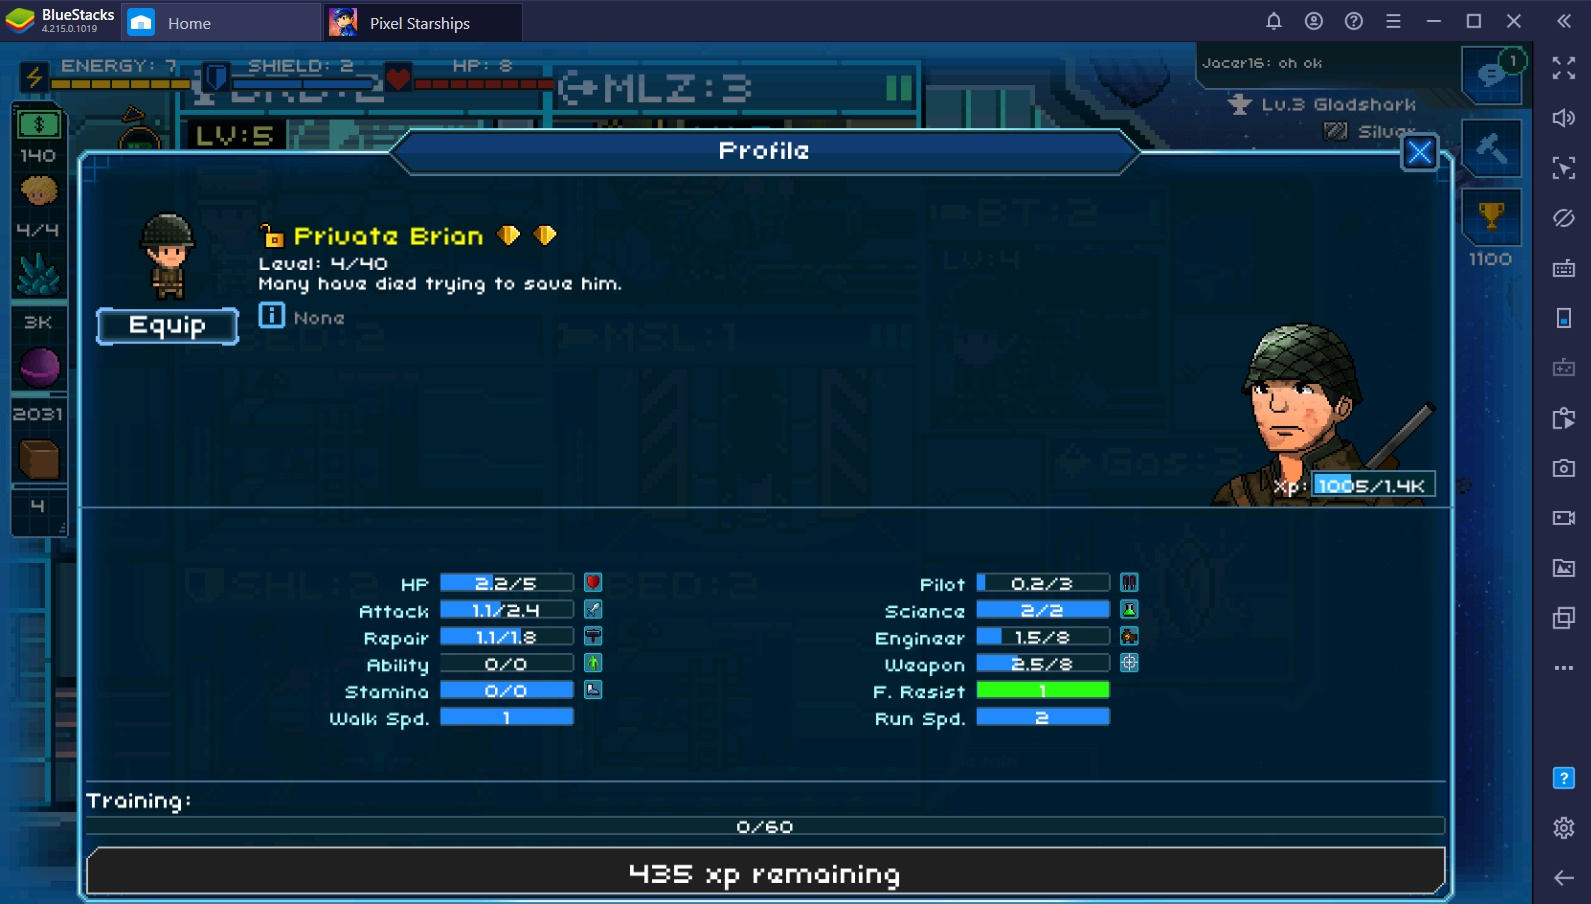 Intergalactic Review on Pixel Starships Galaxy with BlueStacks on PC